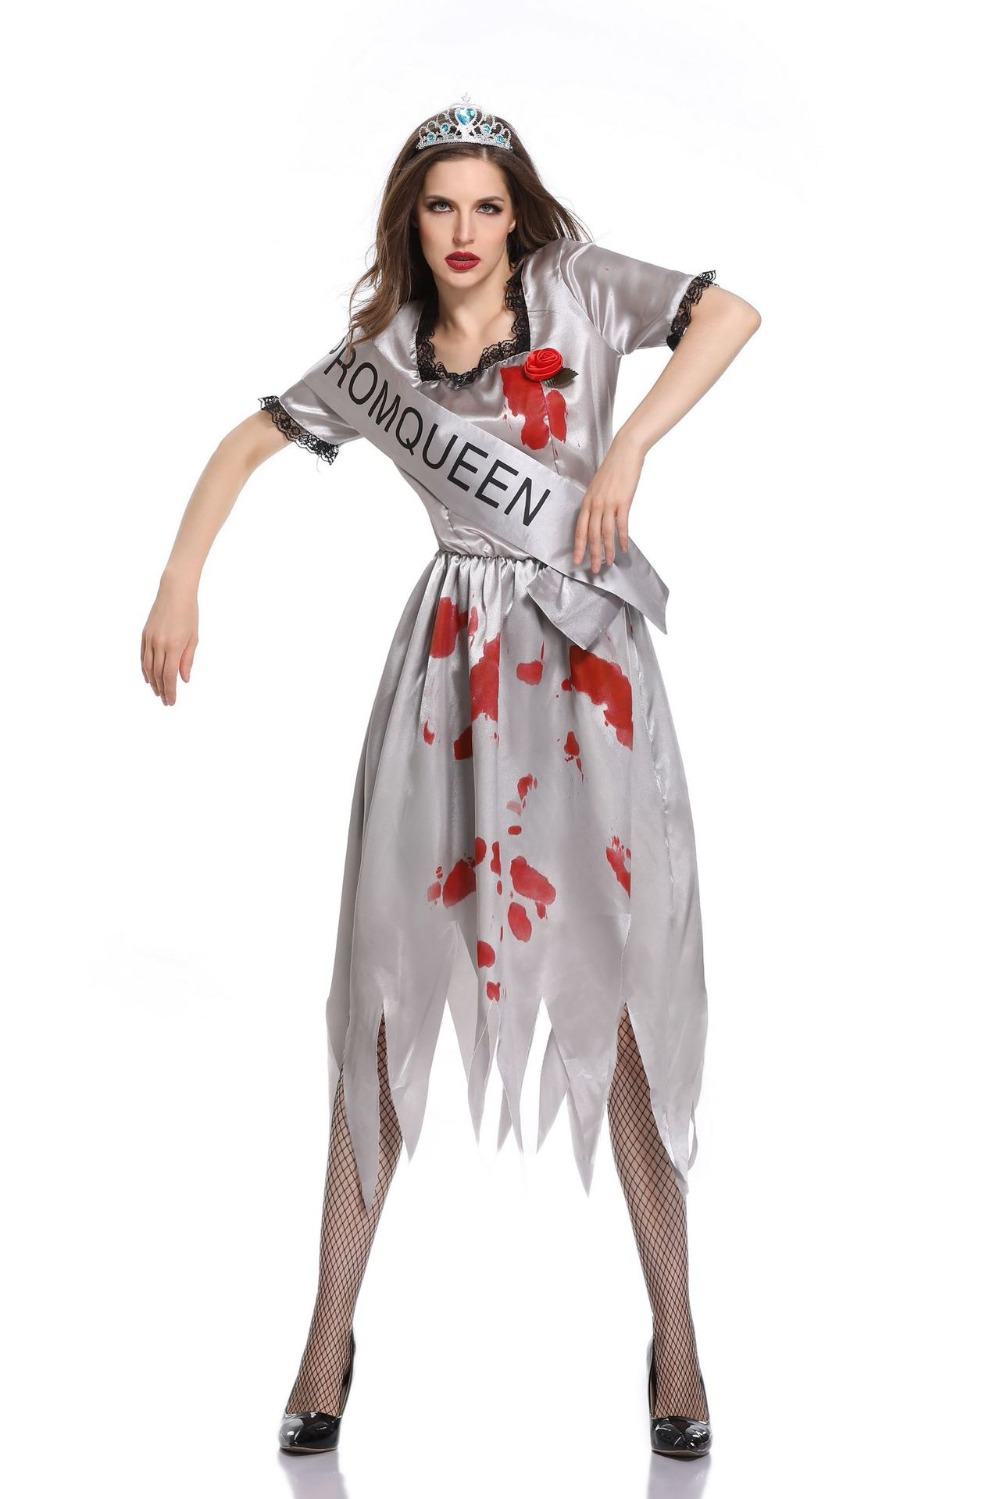 New Scary Costume White Corpse Devil costume Vampire Bloody Cospaly Costume Dress For Haloween ...